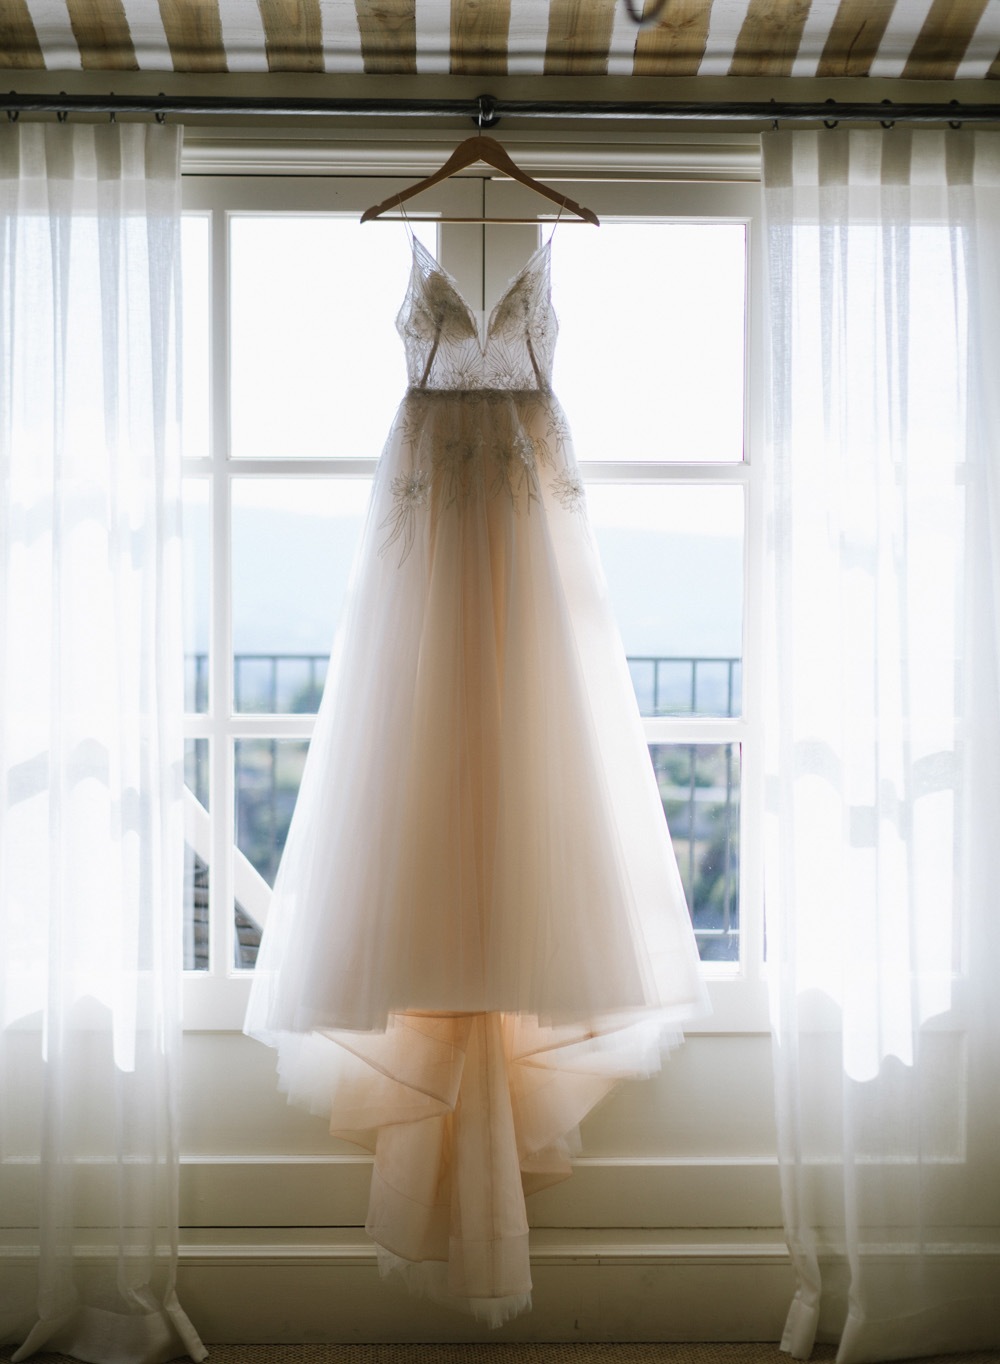 The bride's translucent fairytale ball gown hangs in a window; Sylvie Gil Photography